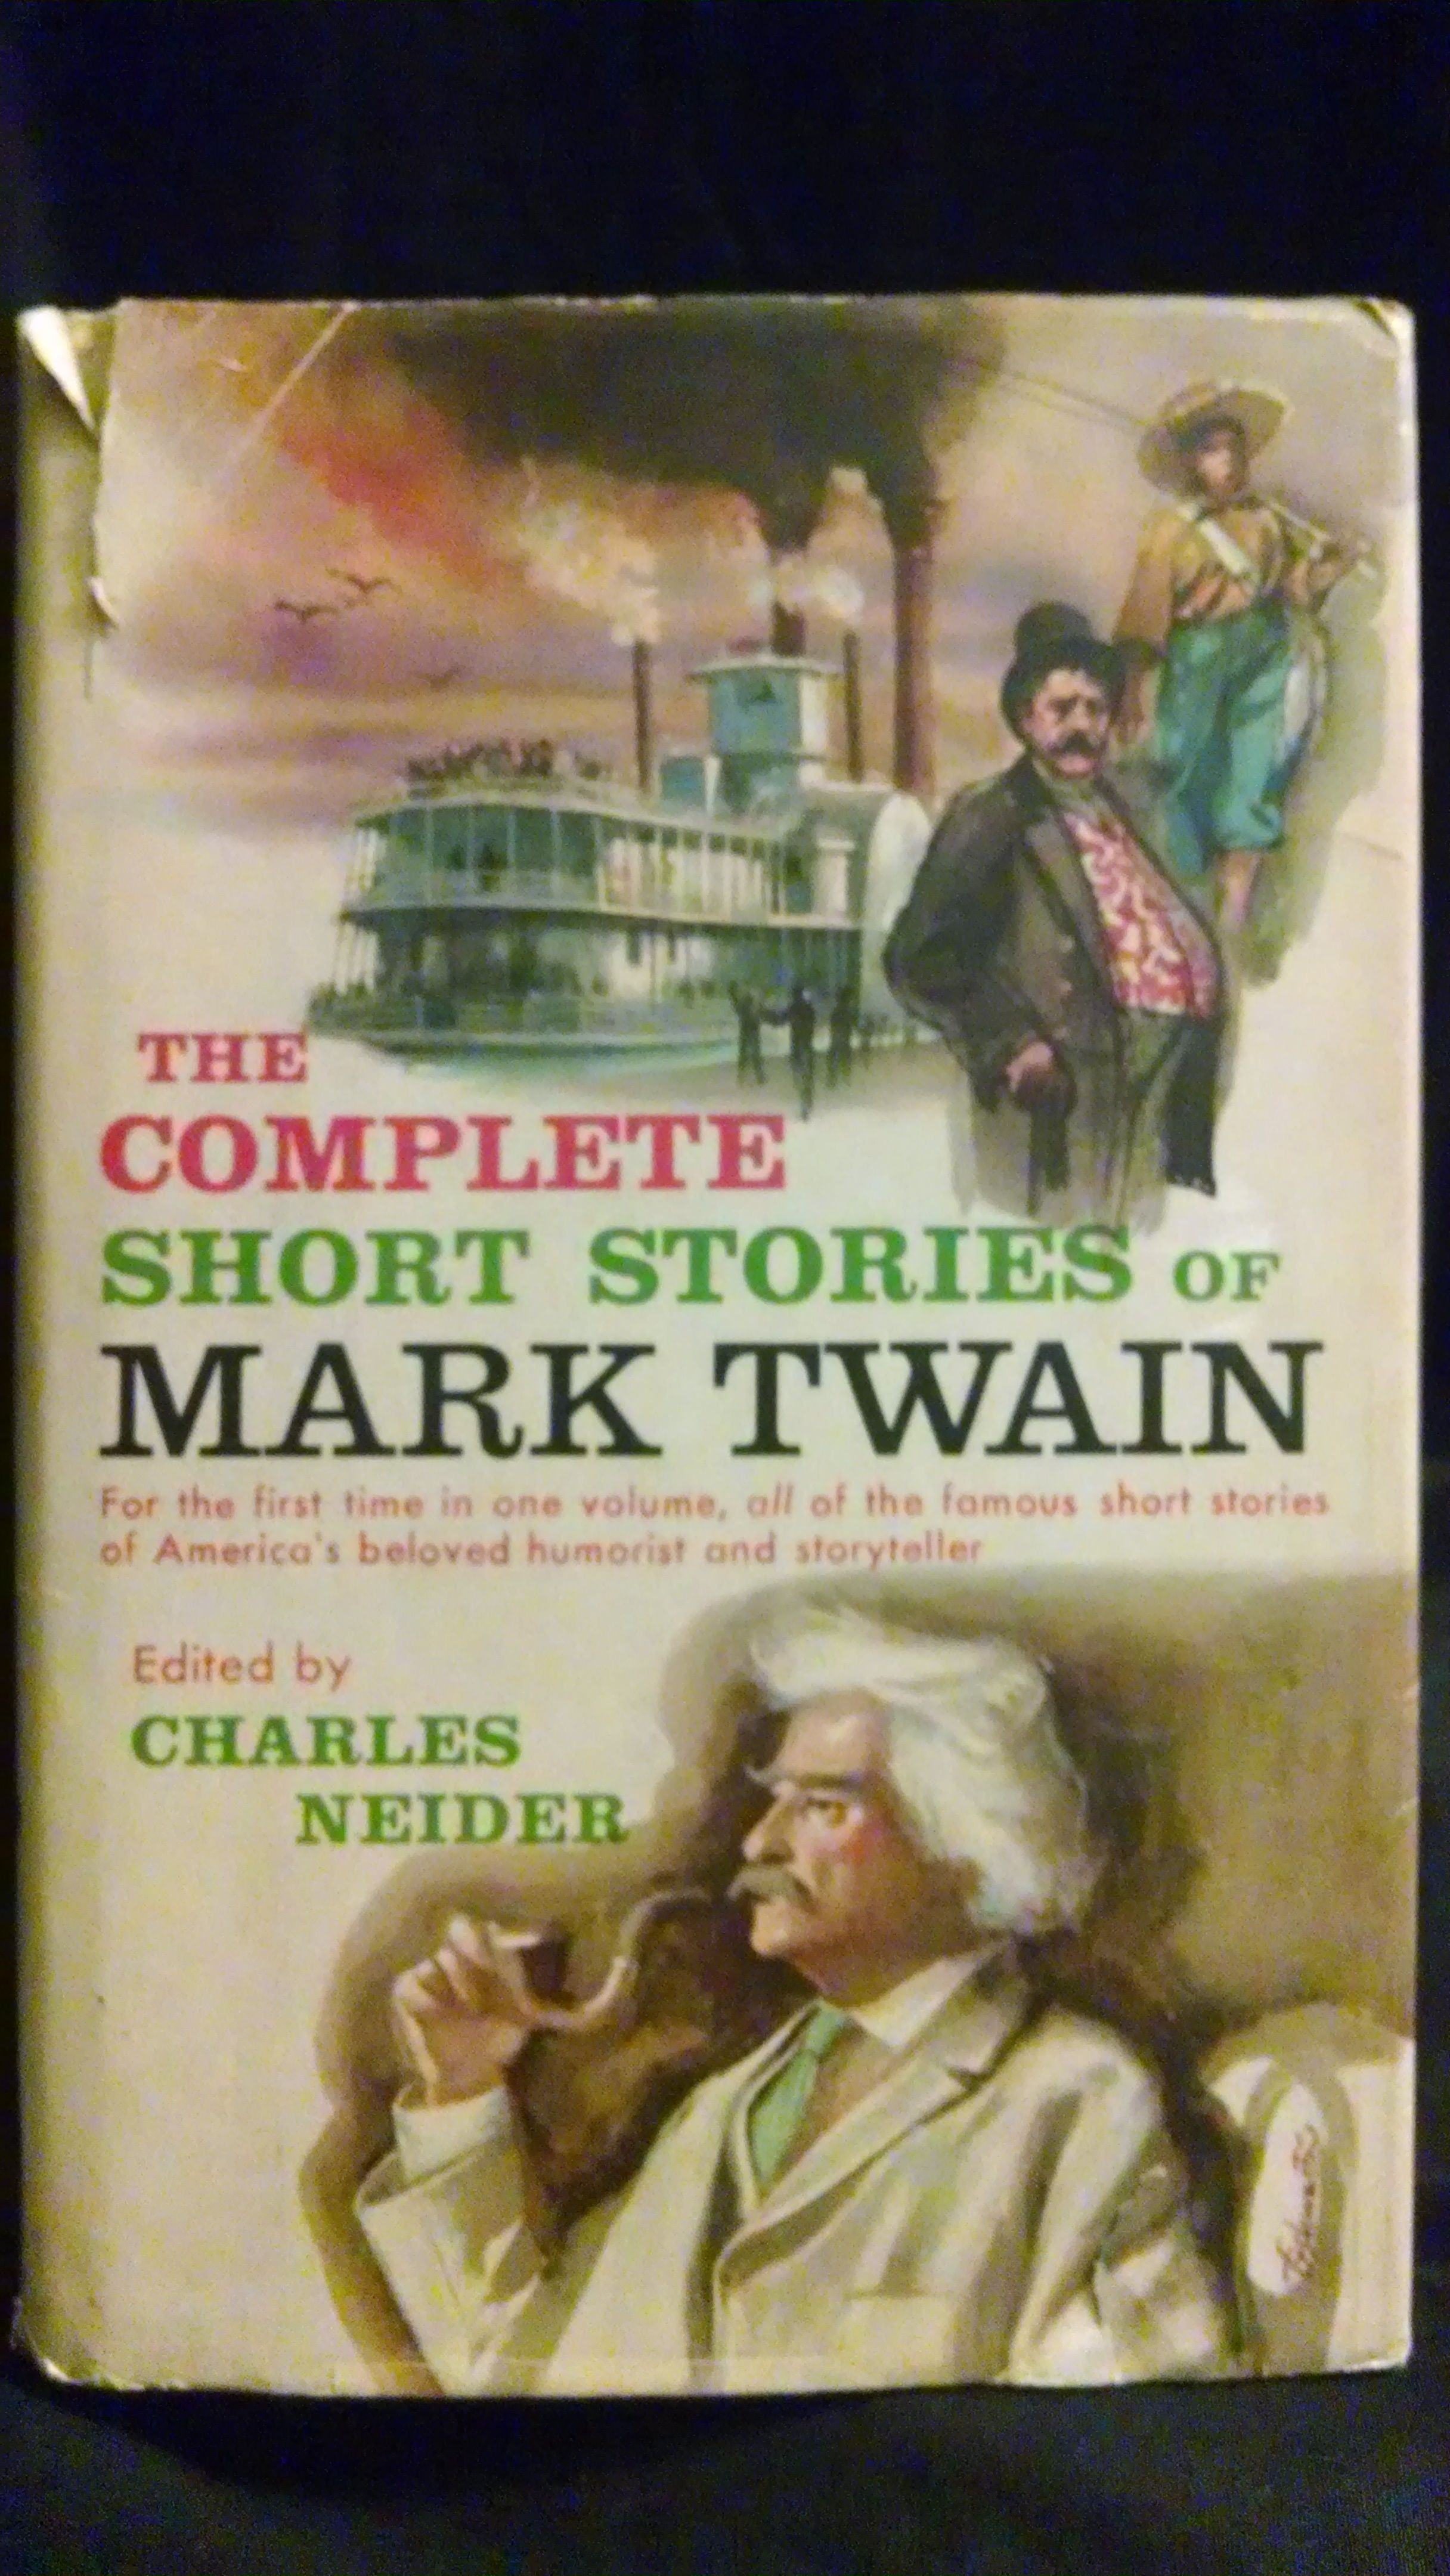 summary of luck short story by mark twain In luck by mark twain at the climax of the story, scoresby mistakes his right hand for his left and leads a charge in the wrong direction luck mark twain summary source(s): karachalia 1 year ago 0.